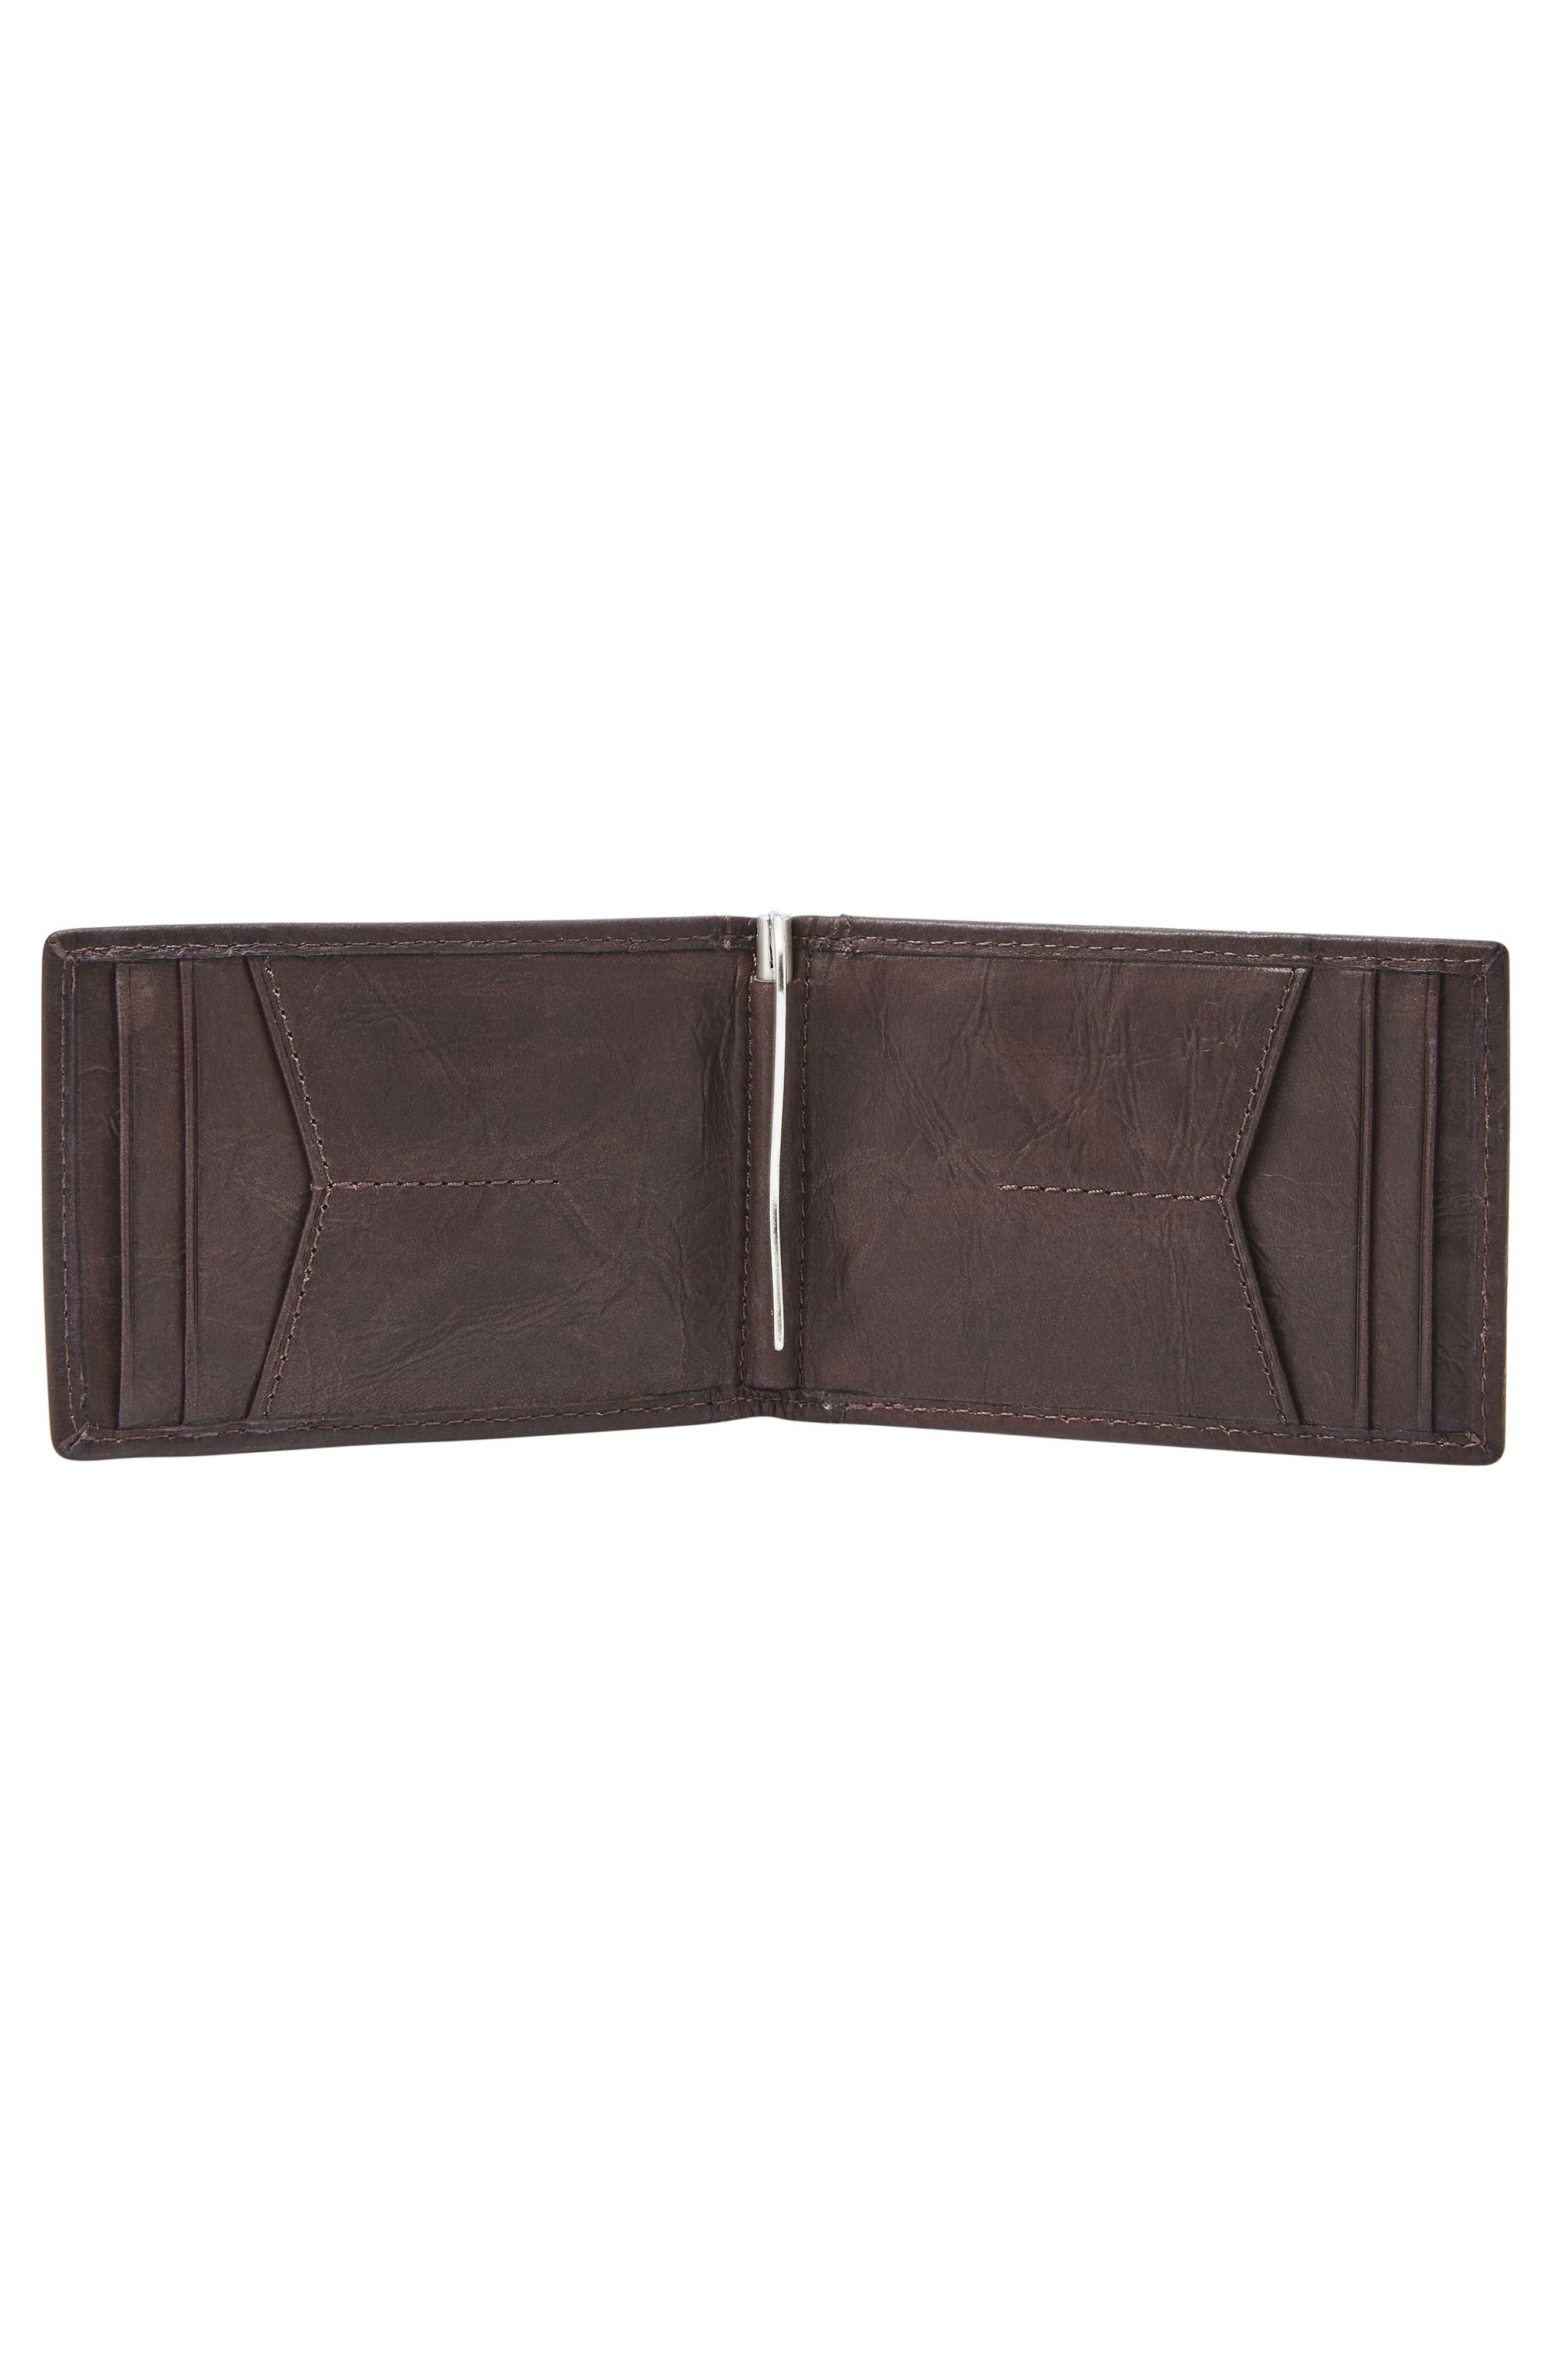 FOSSIL,                             Neel Leather Money Clip Wallet,                             Alternate thumbnail 2, color,                             BROWN